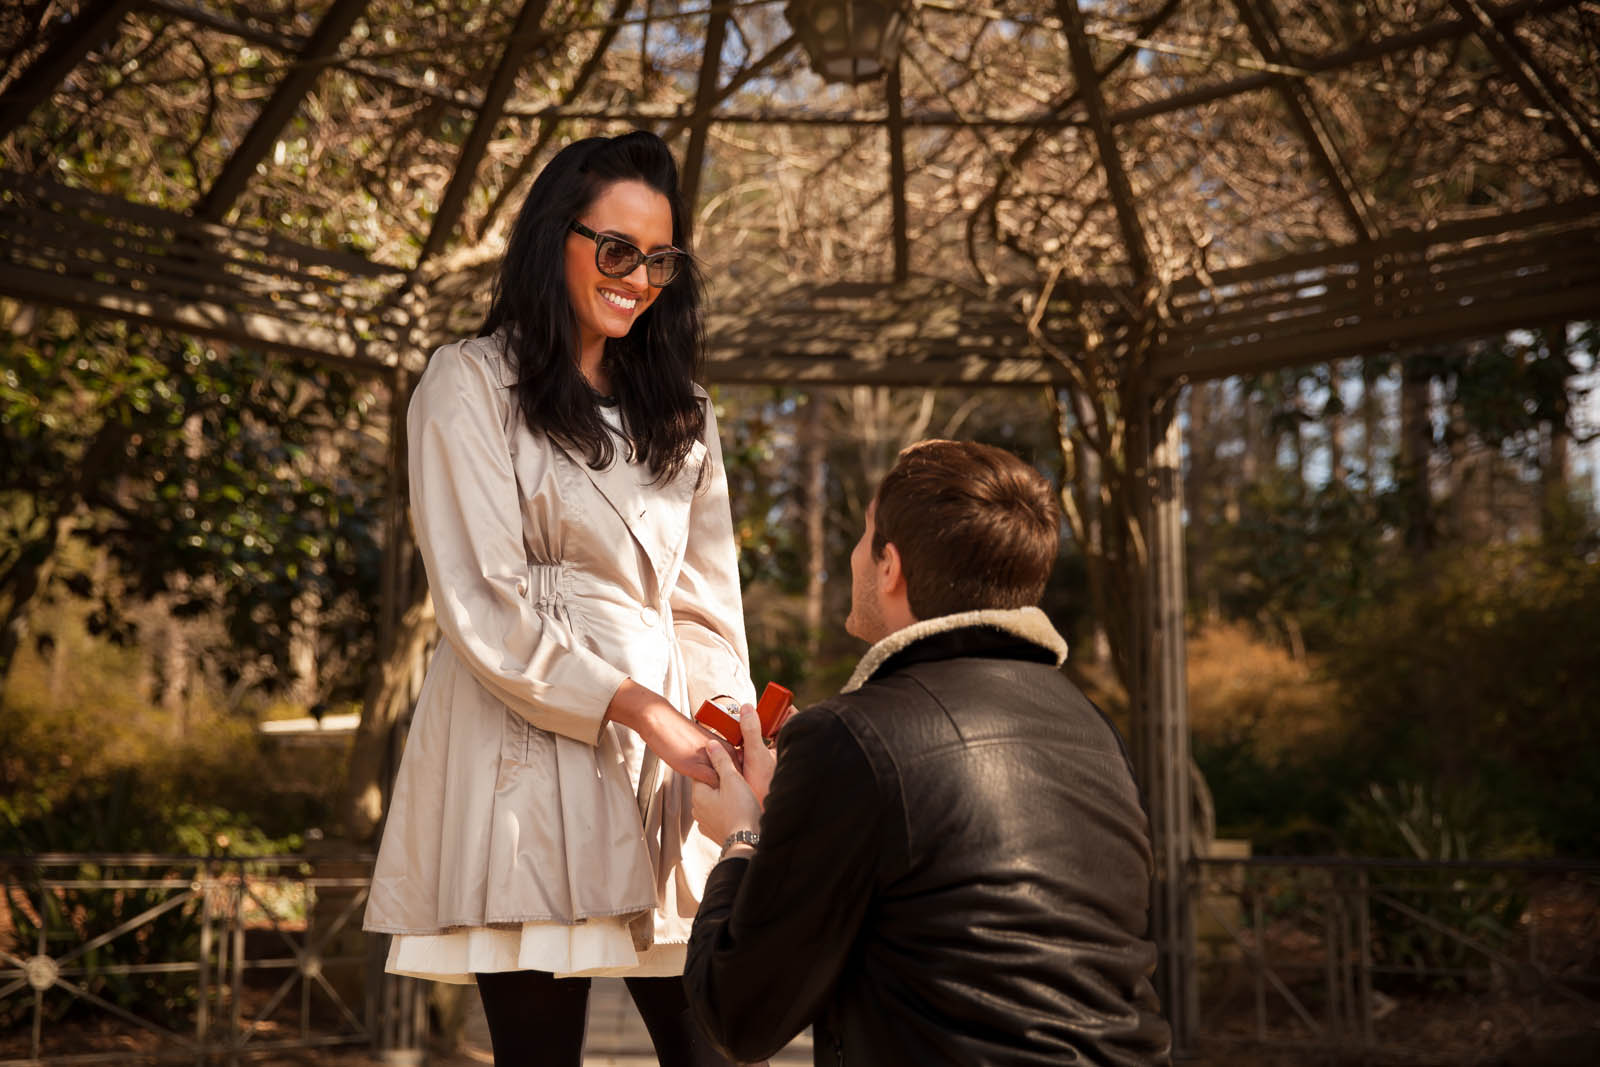 Alex_and_Remy_Proposal_Engagement-0653.jpg